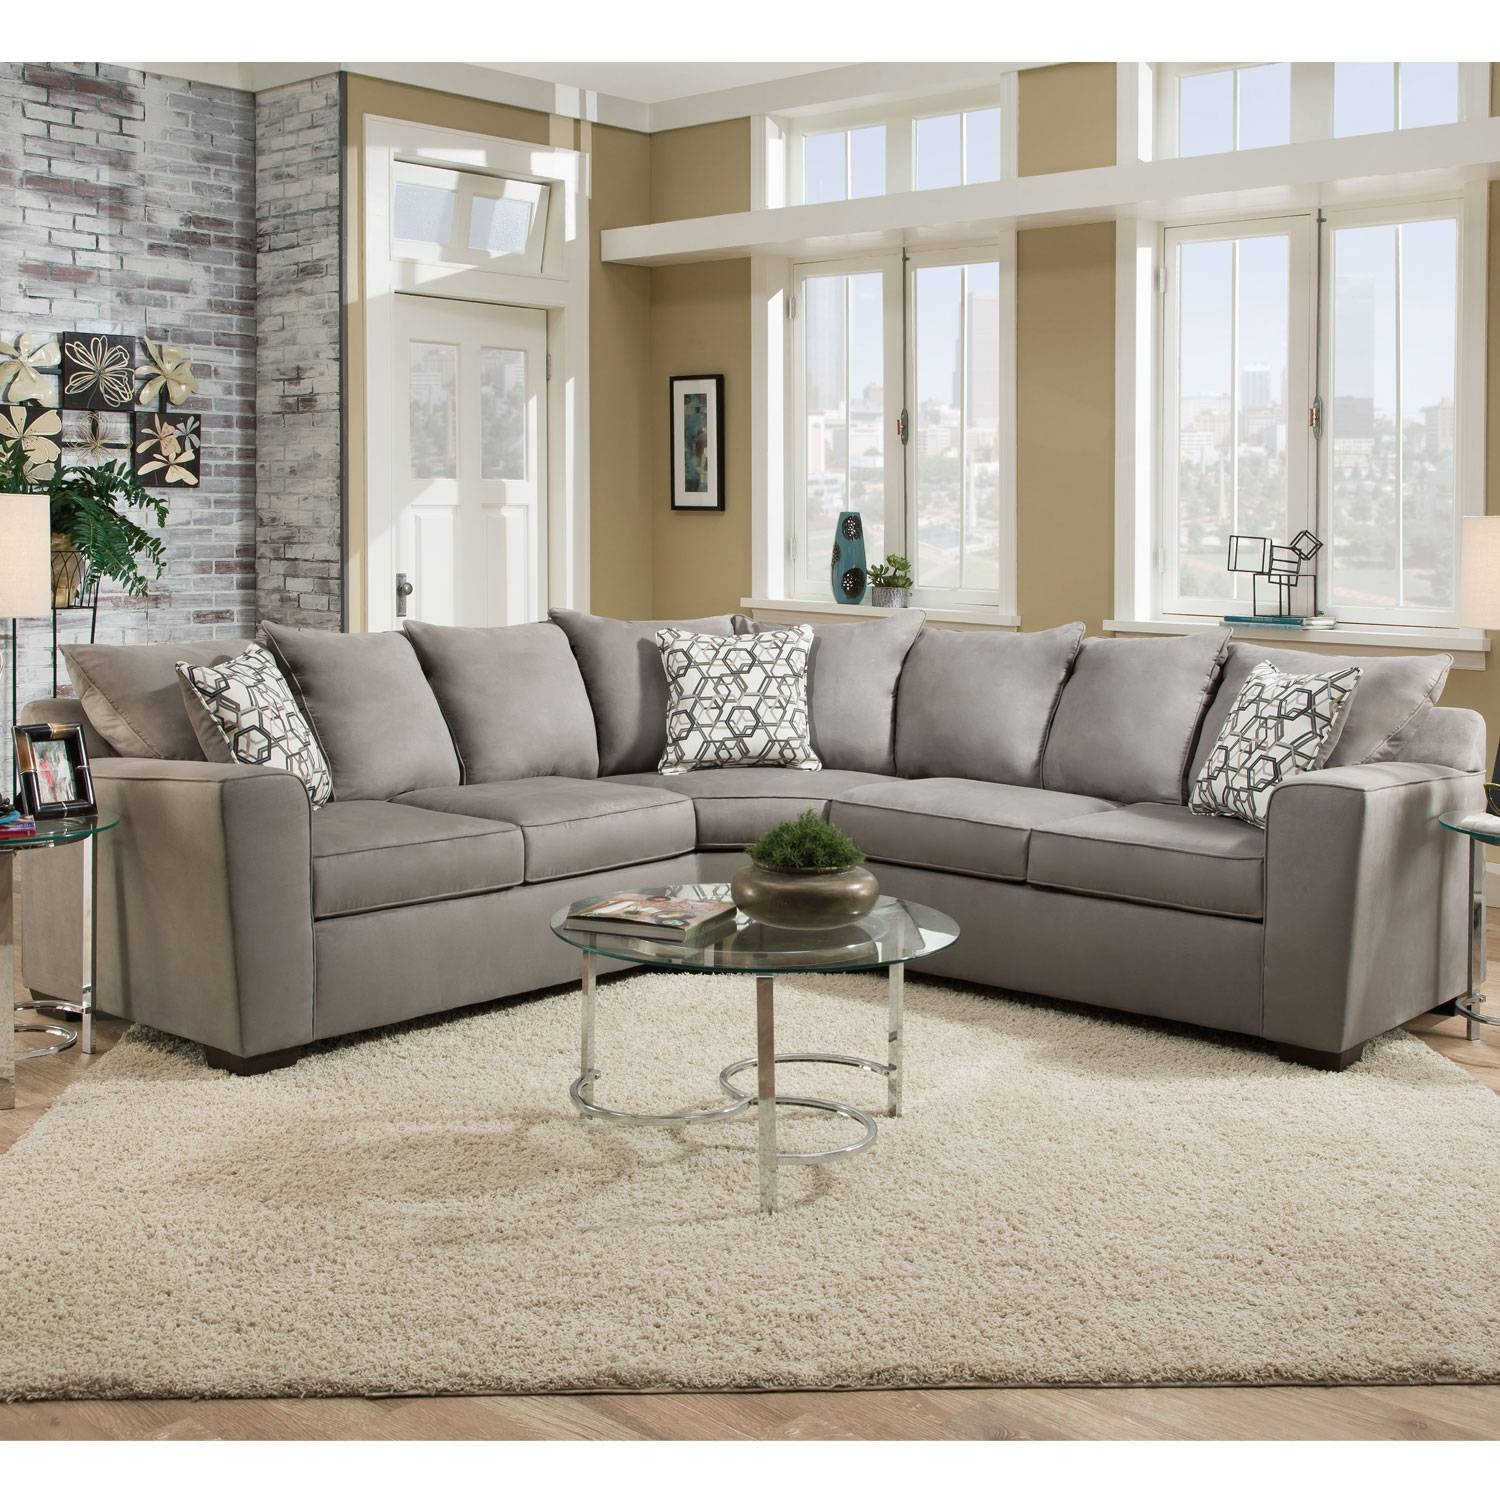 Furniture: Simmons Sofa For Comfortable Seating — Threestems for Simmons Microfiber Sofas (Image 11 of 15)